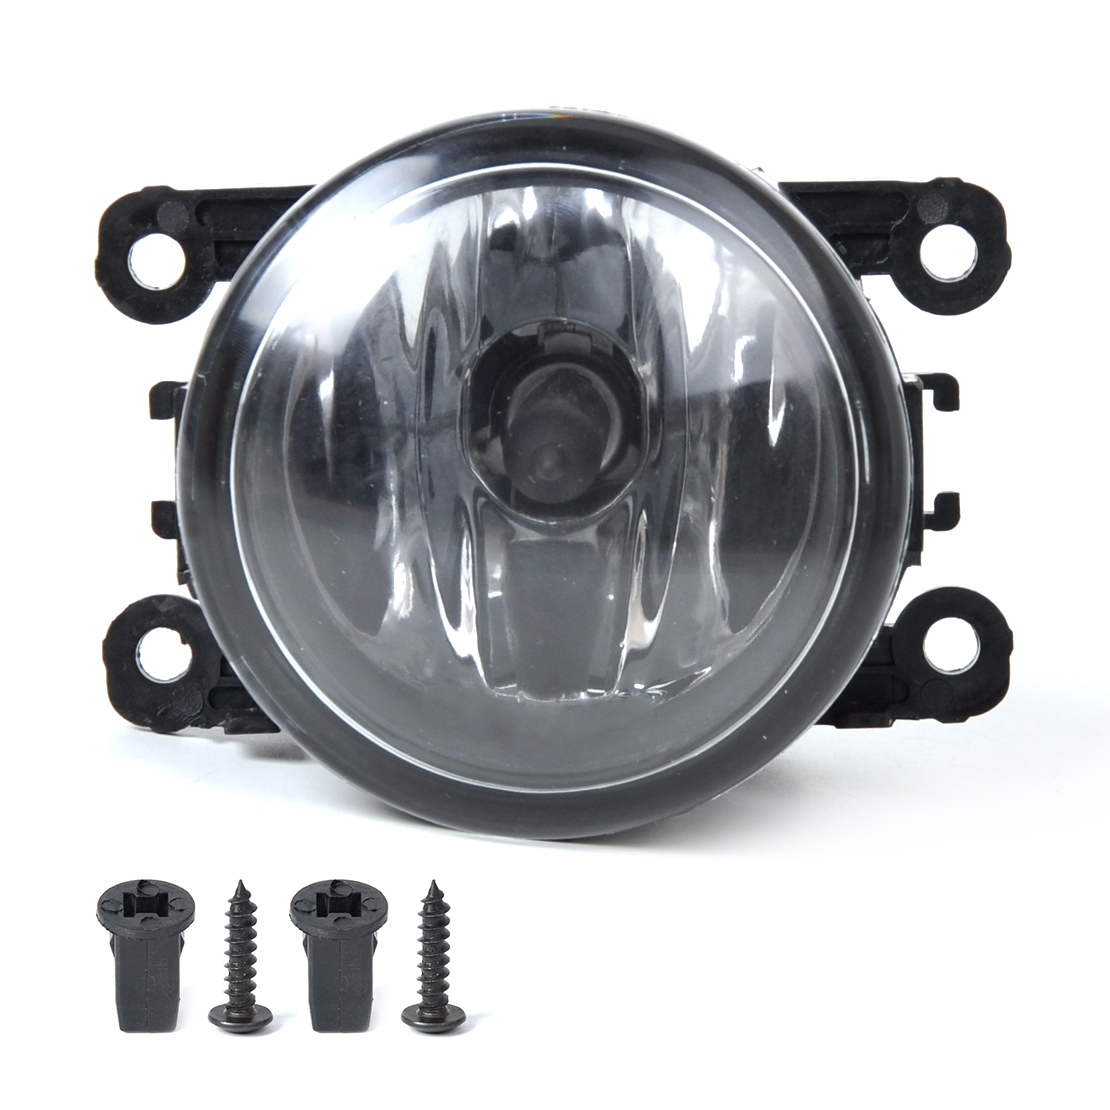 DWCX 4F9Z-15200-AA 1pc Right / Left Fog Light Lamp + H11 Bulbs 55W For Acura Honda Ford Lincoln Jaguar Subaru Nissan Suzuki dwcx 2pcs set right left fog light lamp with h11 halogen 55w bulb assembly for nissan murano rouge versa infiniti ex35 m37 q70